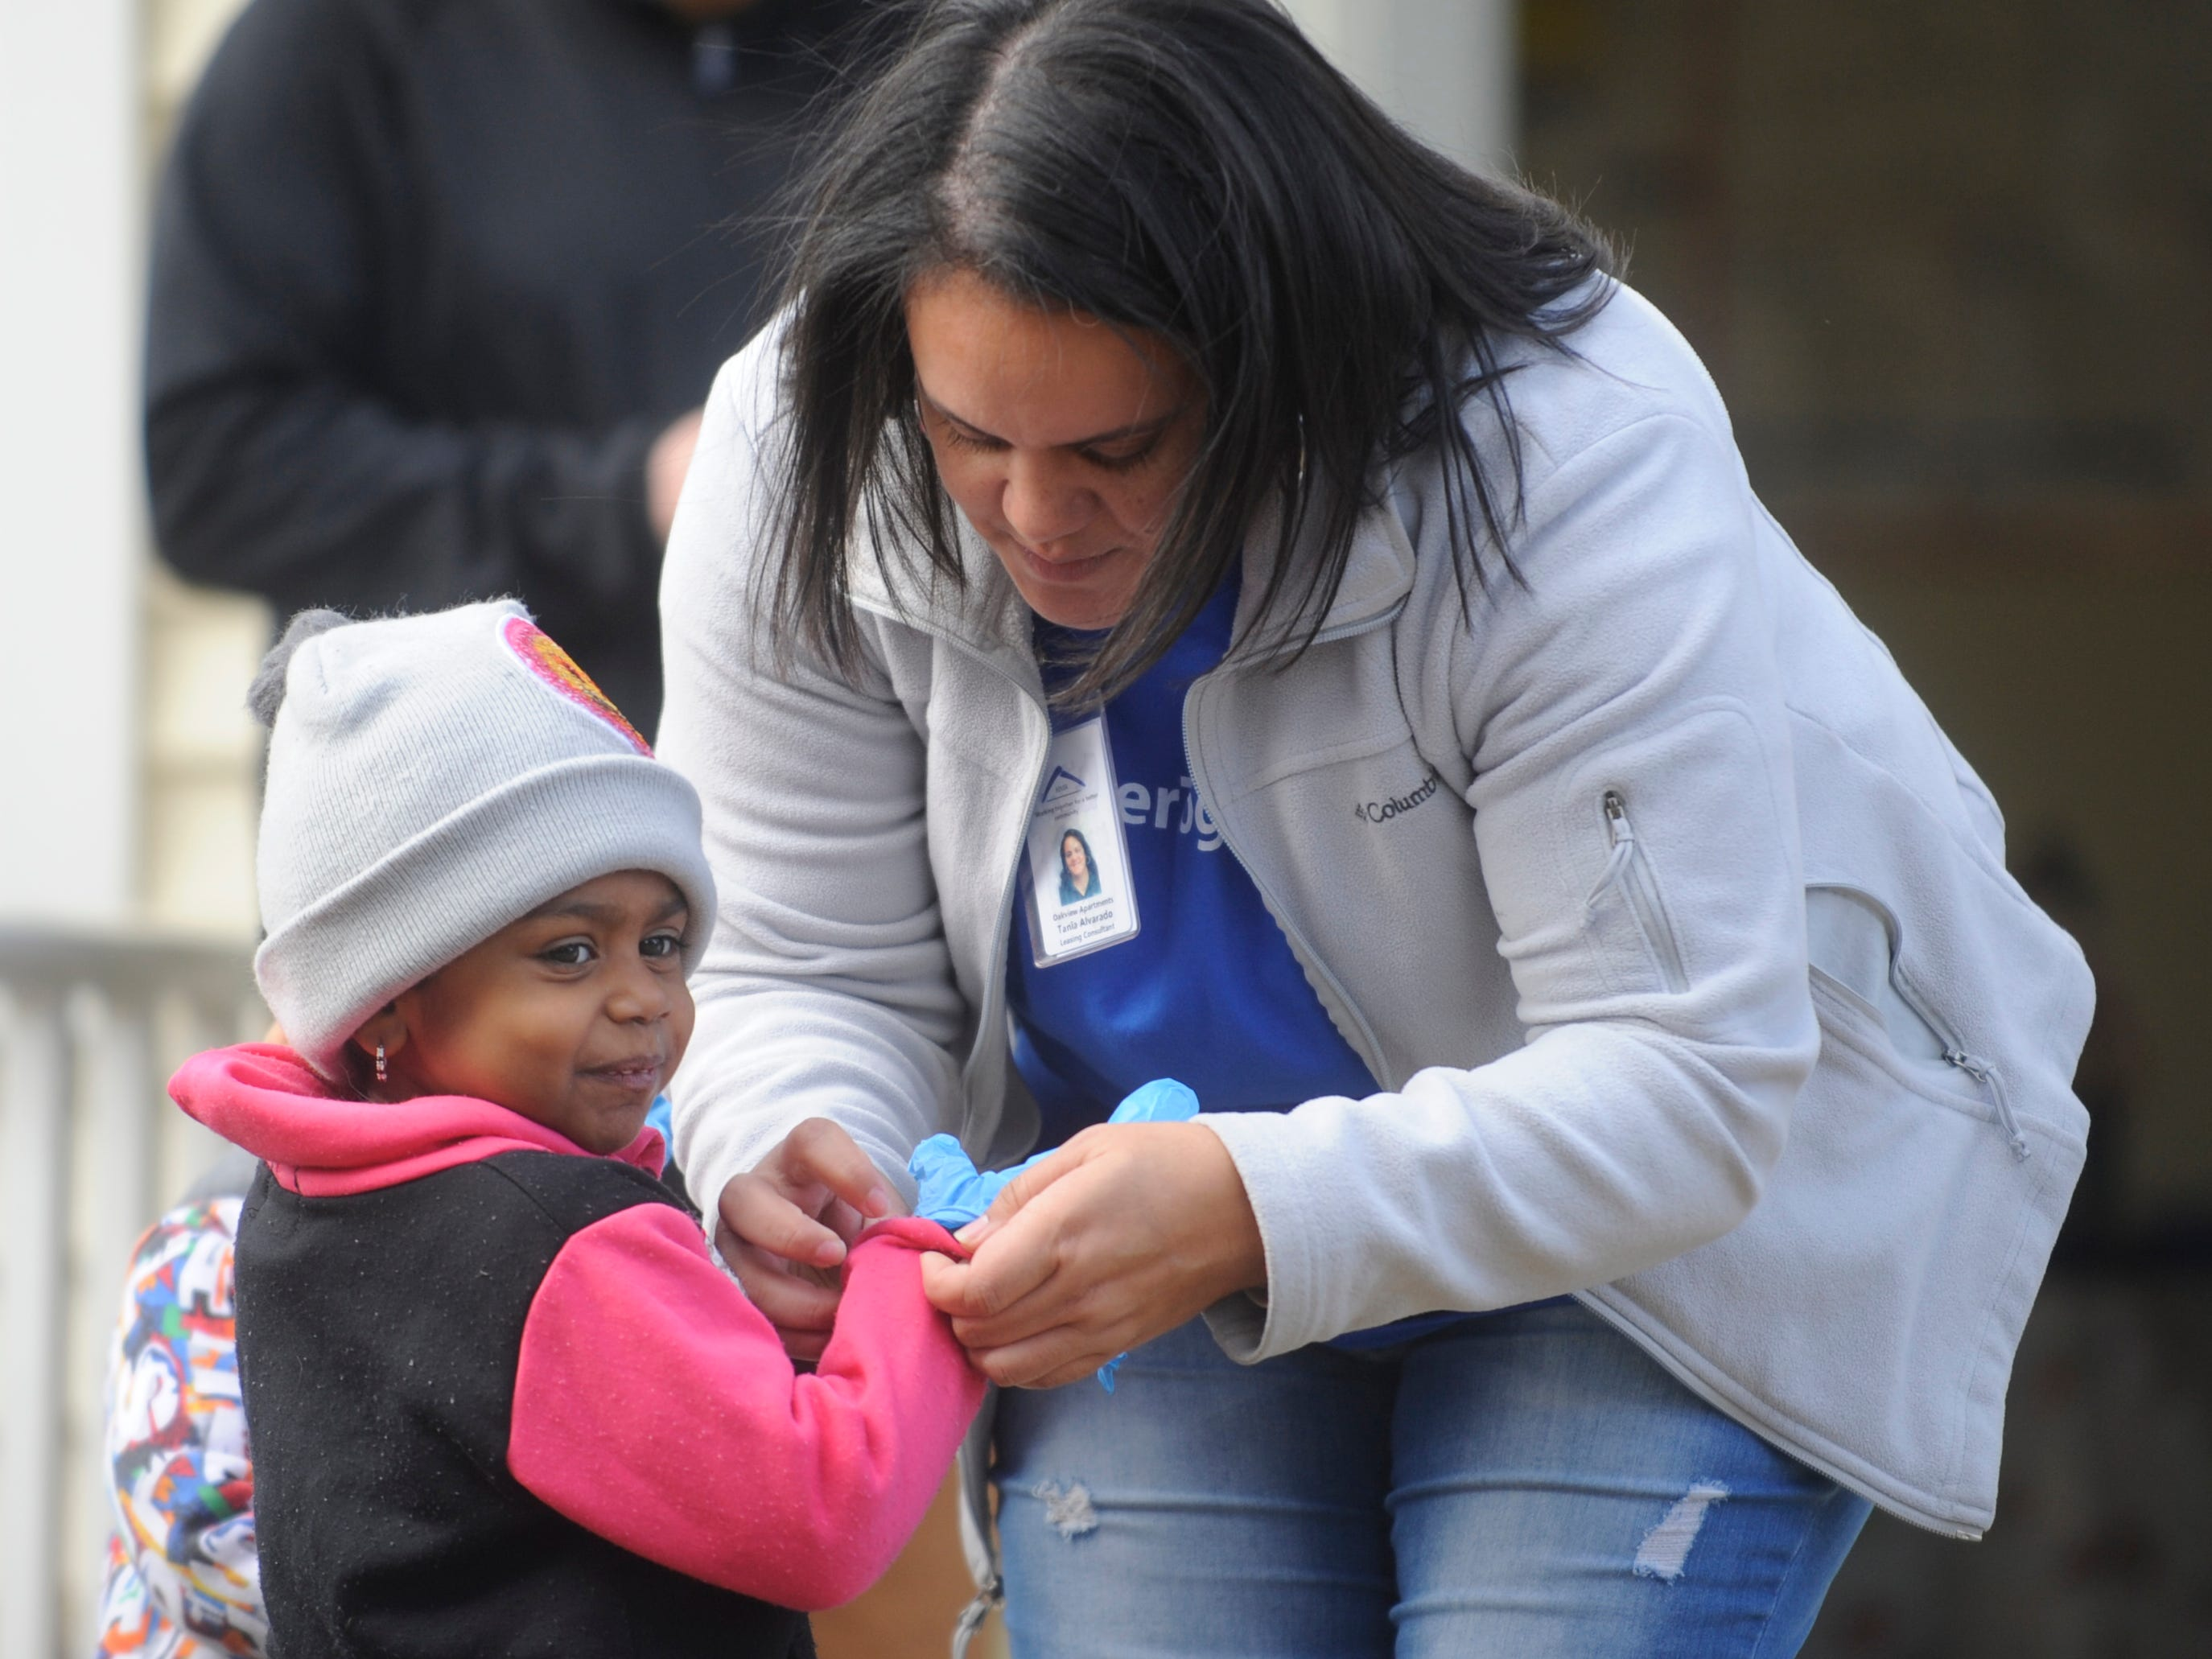 Tania Alvarado, leasing consultant at Oakview Apartments, helps a volunteer put on gloves for the facilities's community clean up event in Millville on Thursday, November 8, 2018.